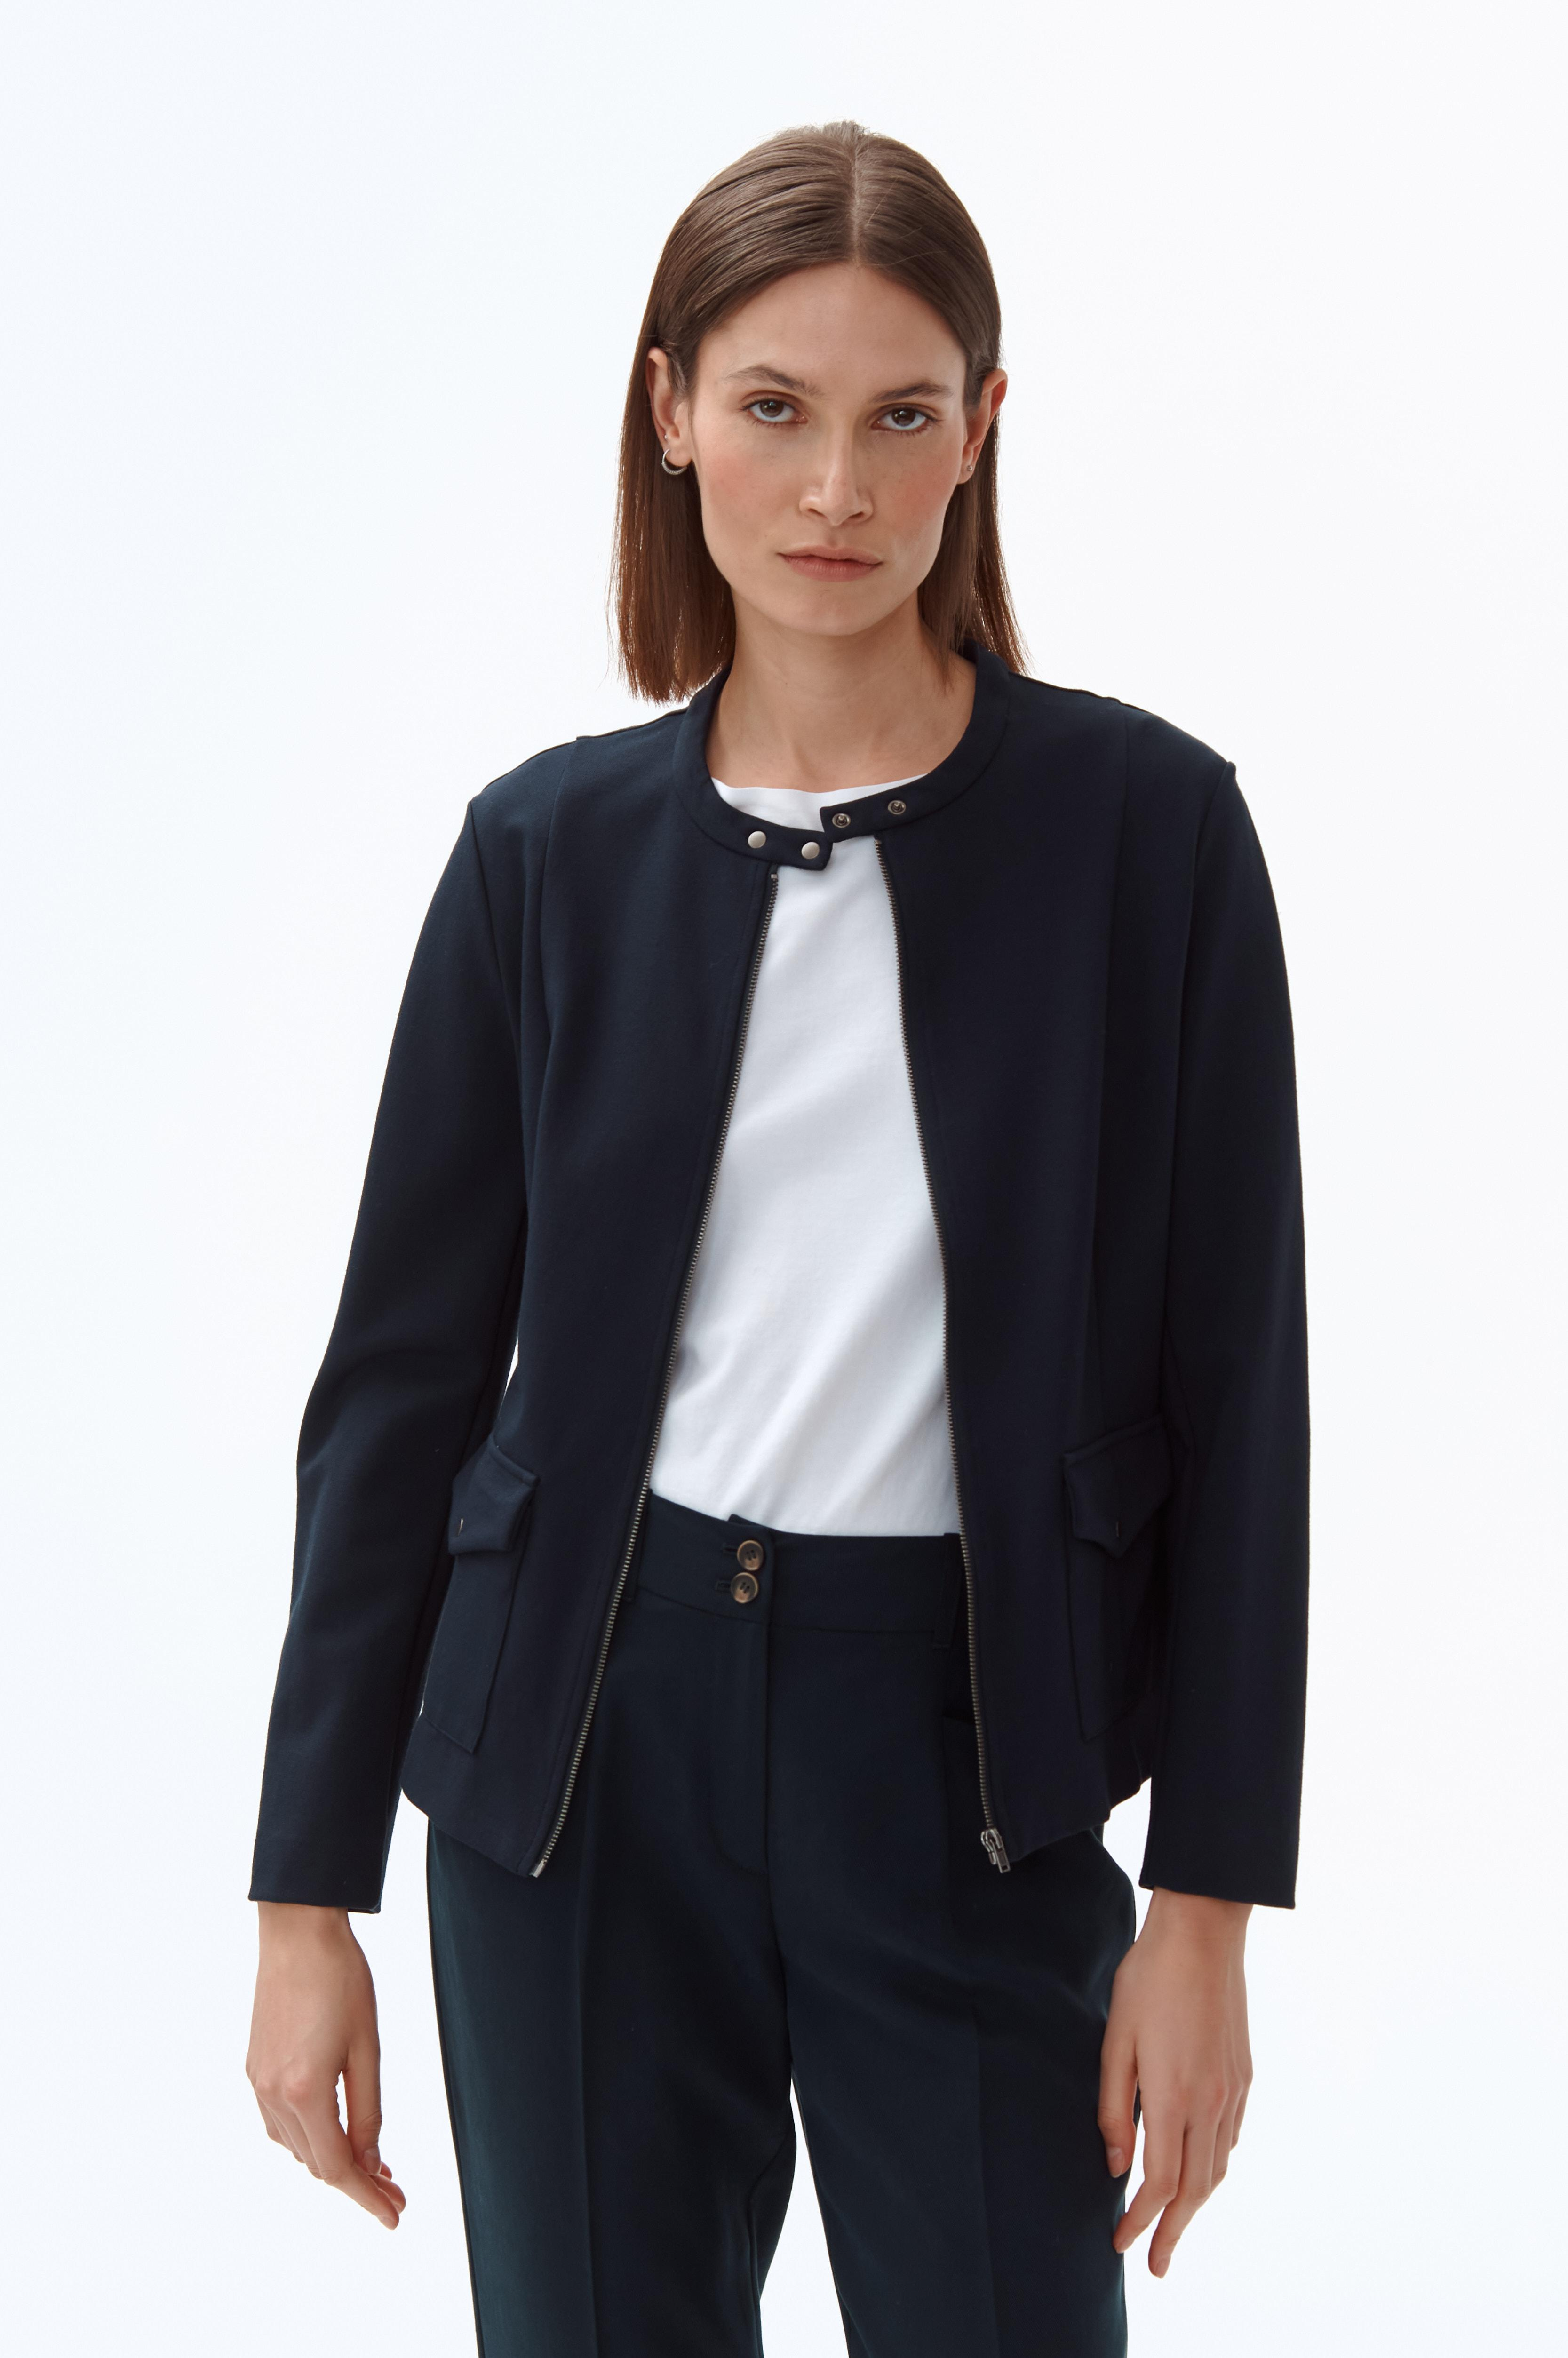 MODERN LADIES' JACKET SORAJA